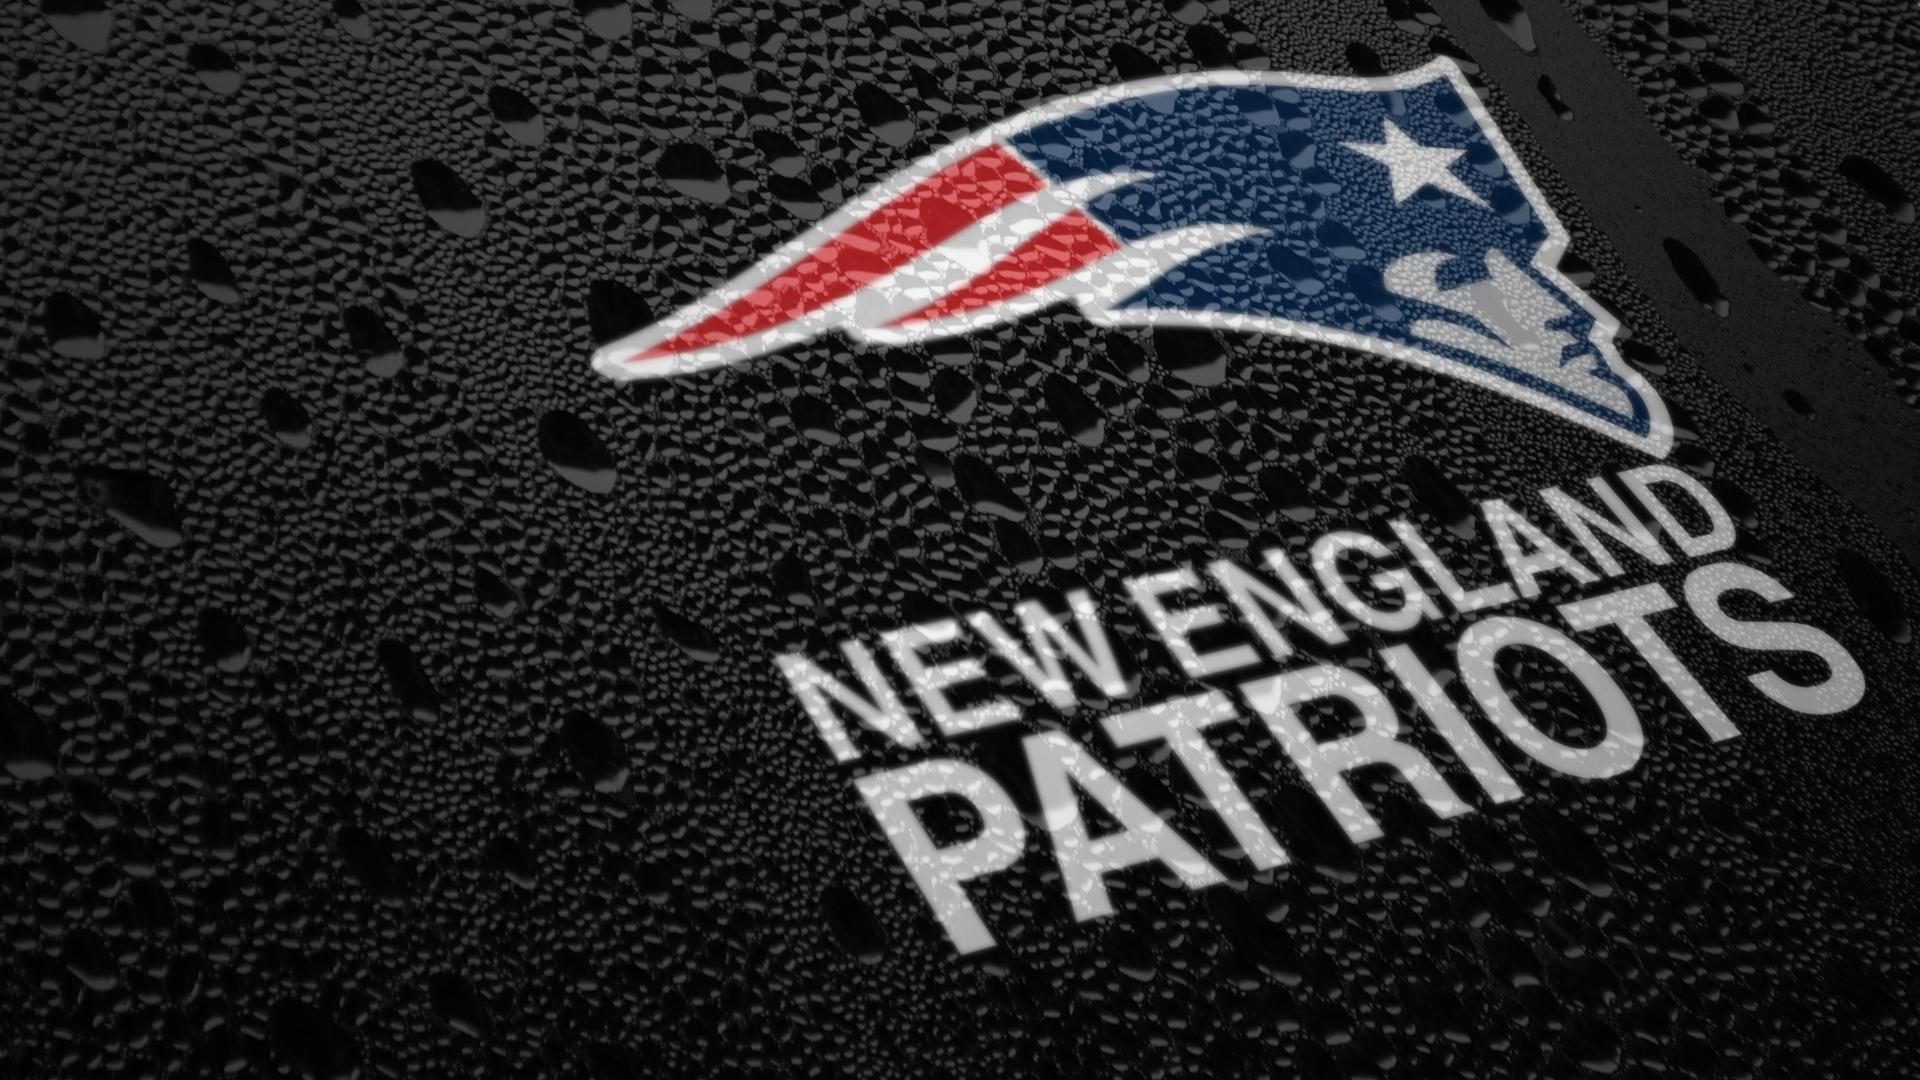 10 Best New England Patriots Wallpaper 1920X1080 FULL HD 1080p For PC Background